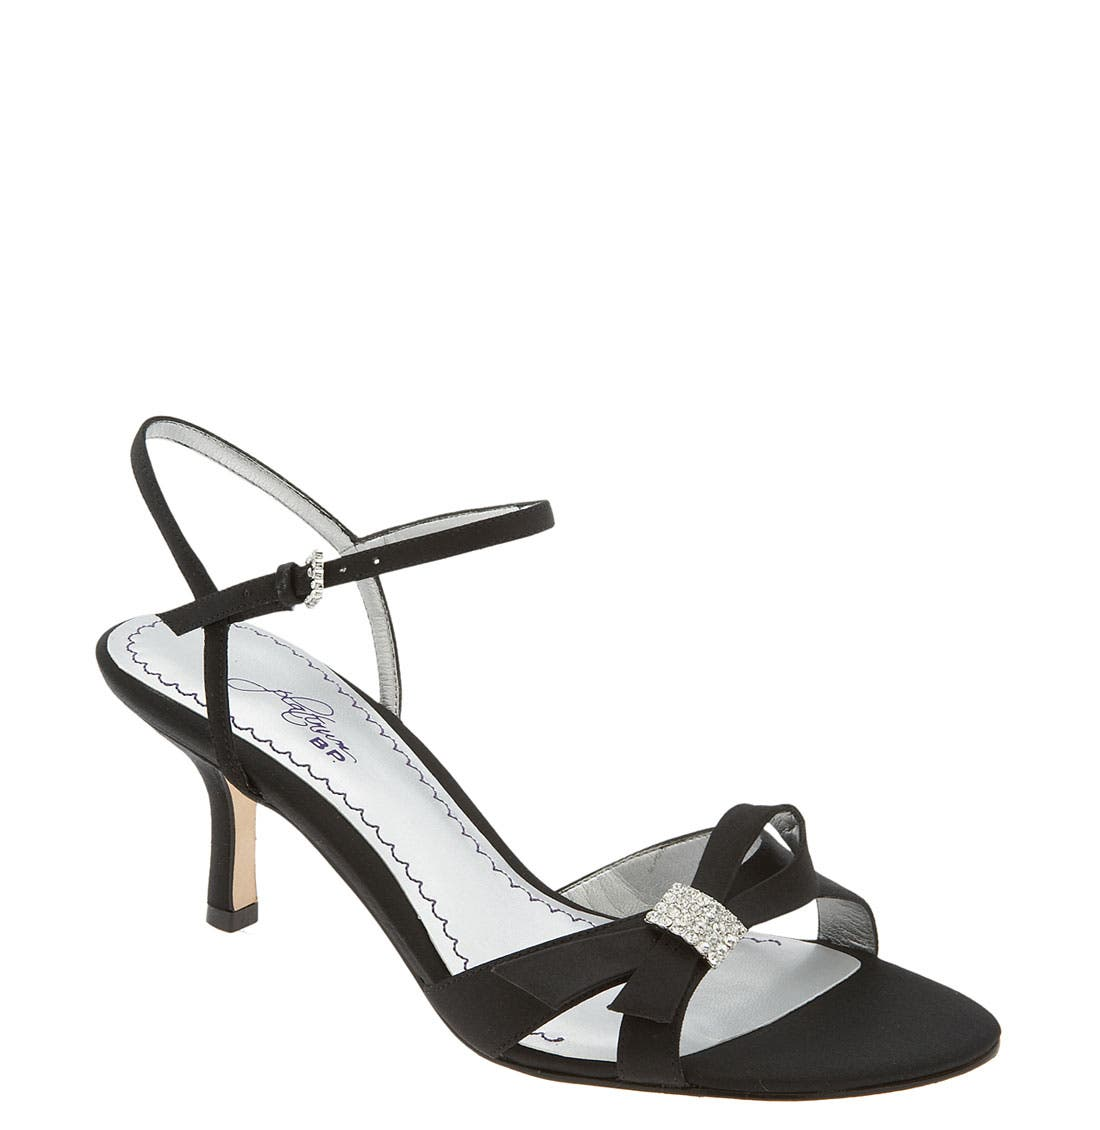 Alternate Image 1 Selected - BP. Platinum 'Larissa' Sandal